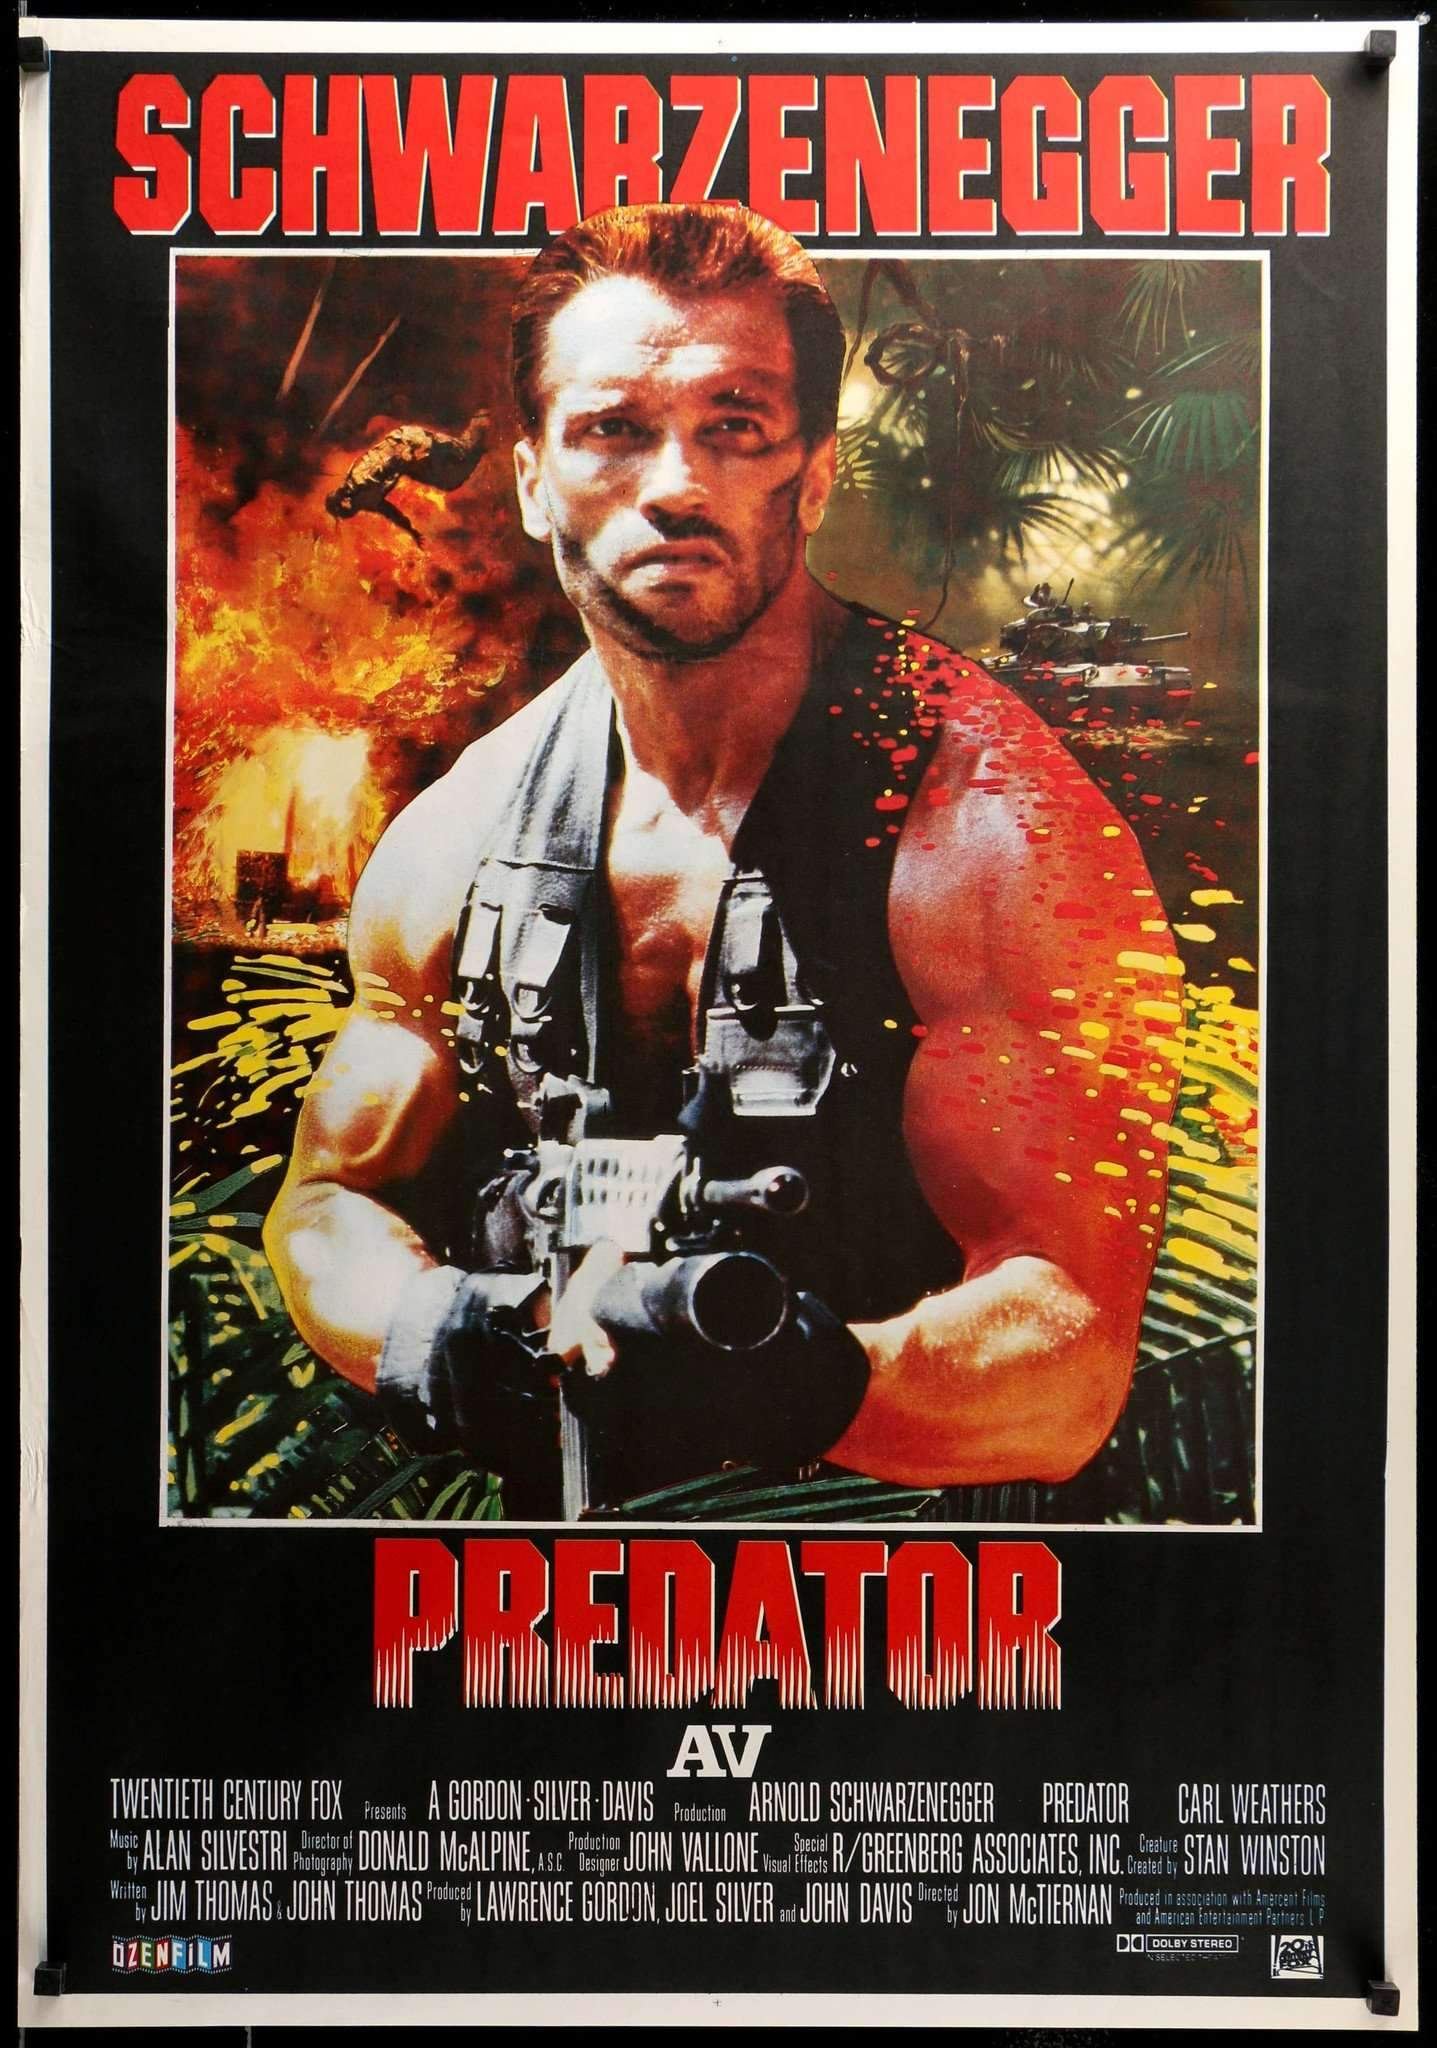 turkish_predator_original_film_art_spo_2000x.jpg